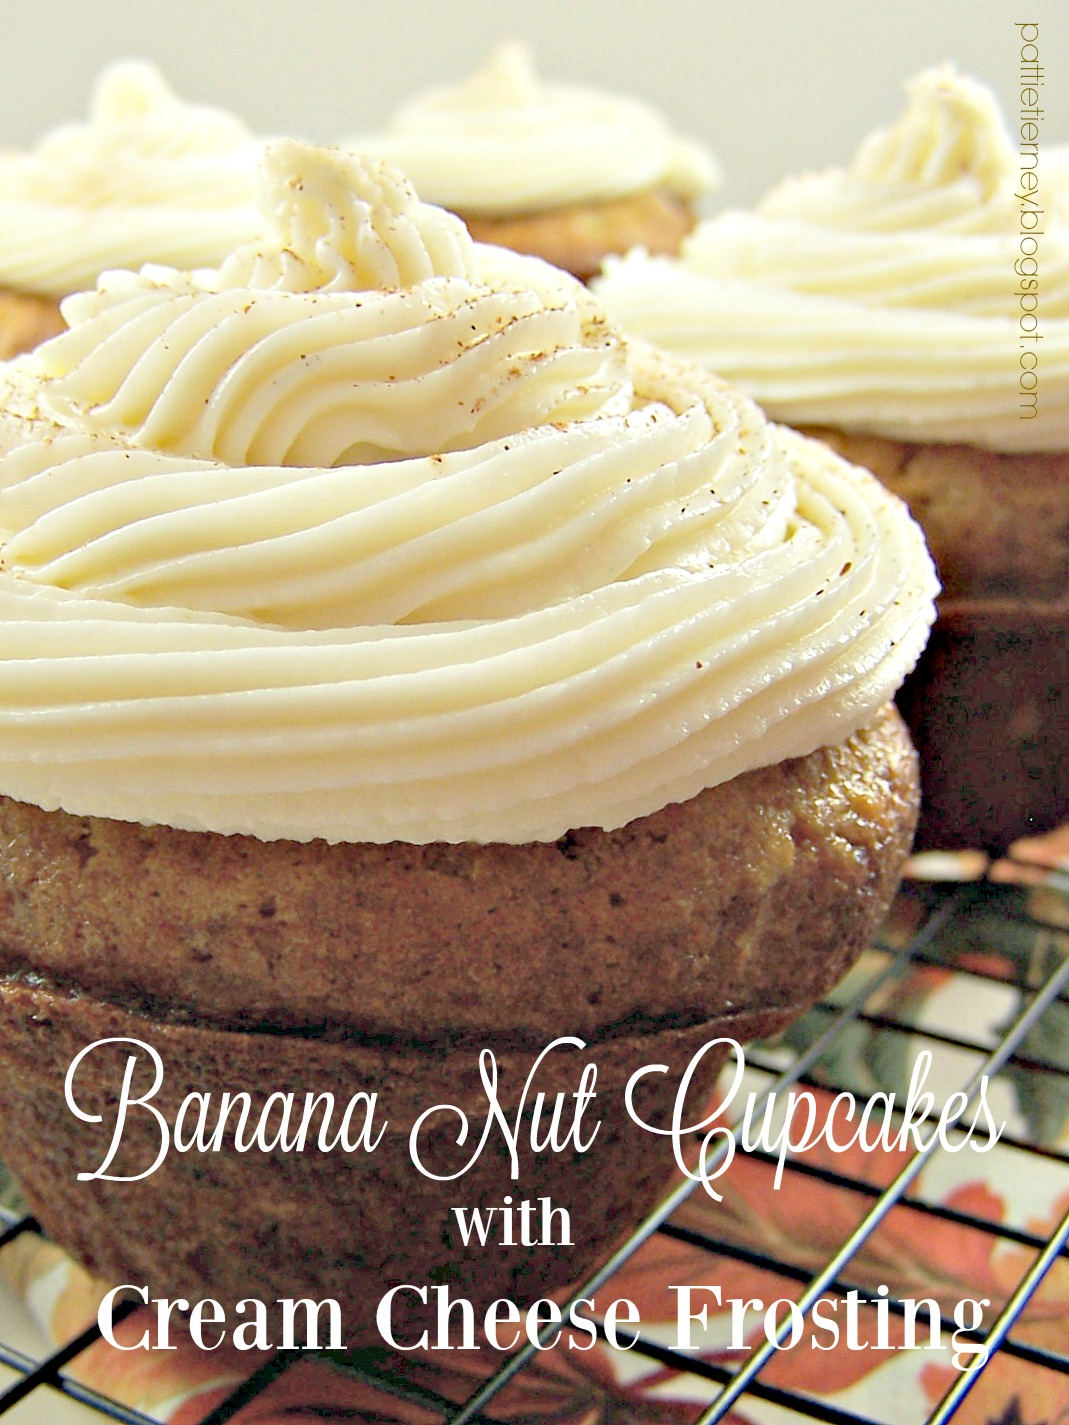 Banana Nut Cupcakes with Cream Cheese Frosting